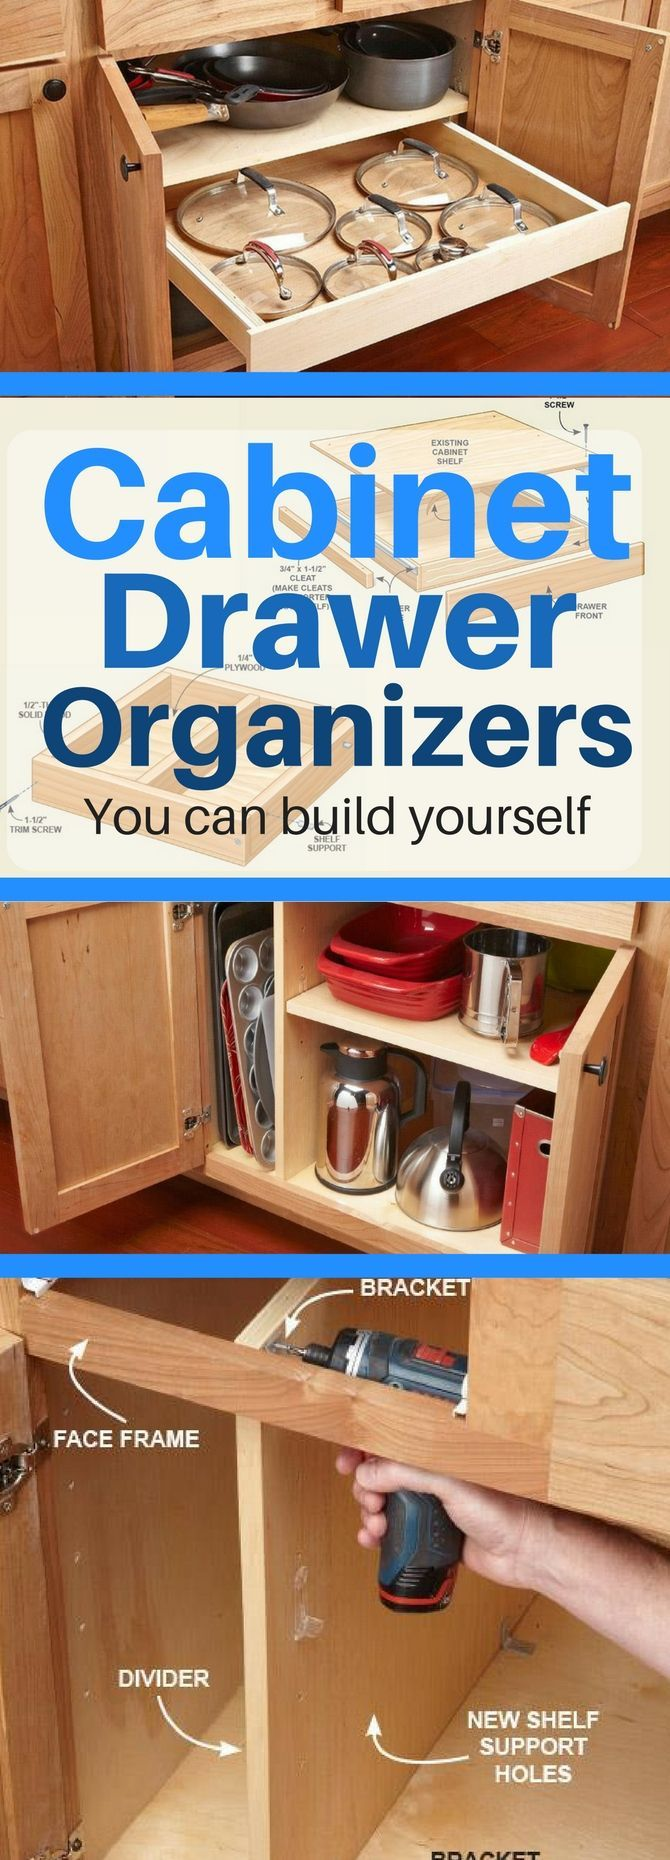 These simple organization tips show how to turn empty space in